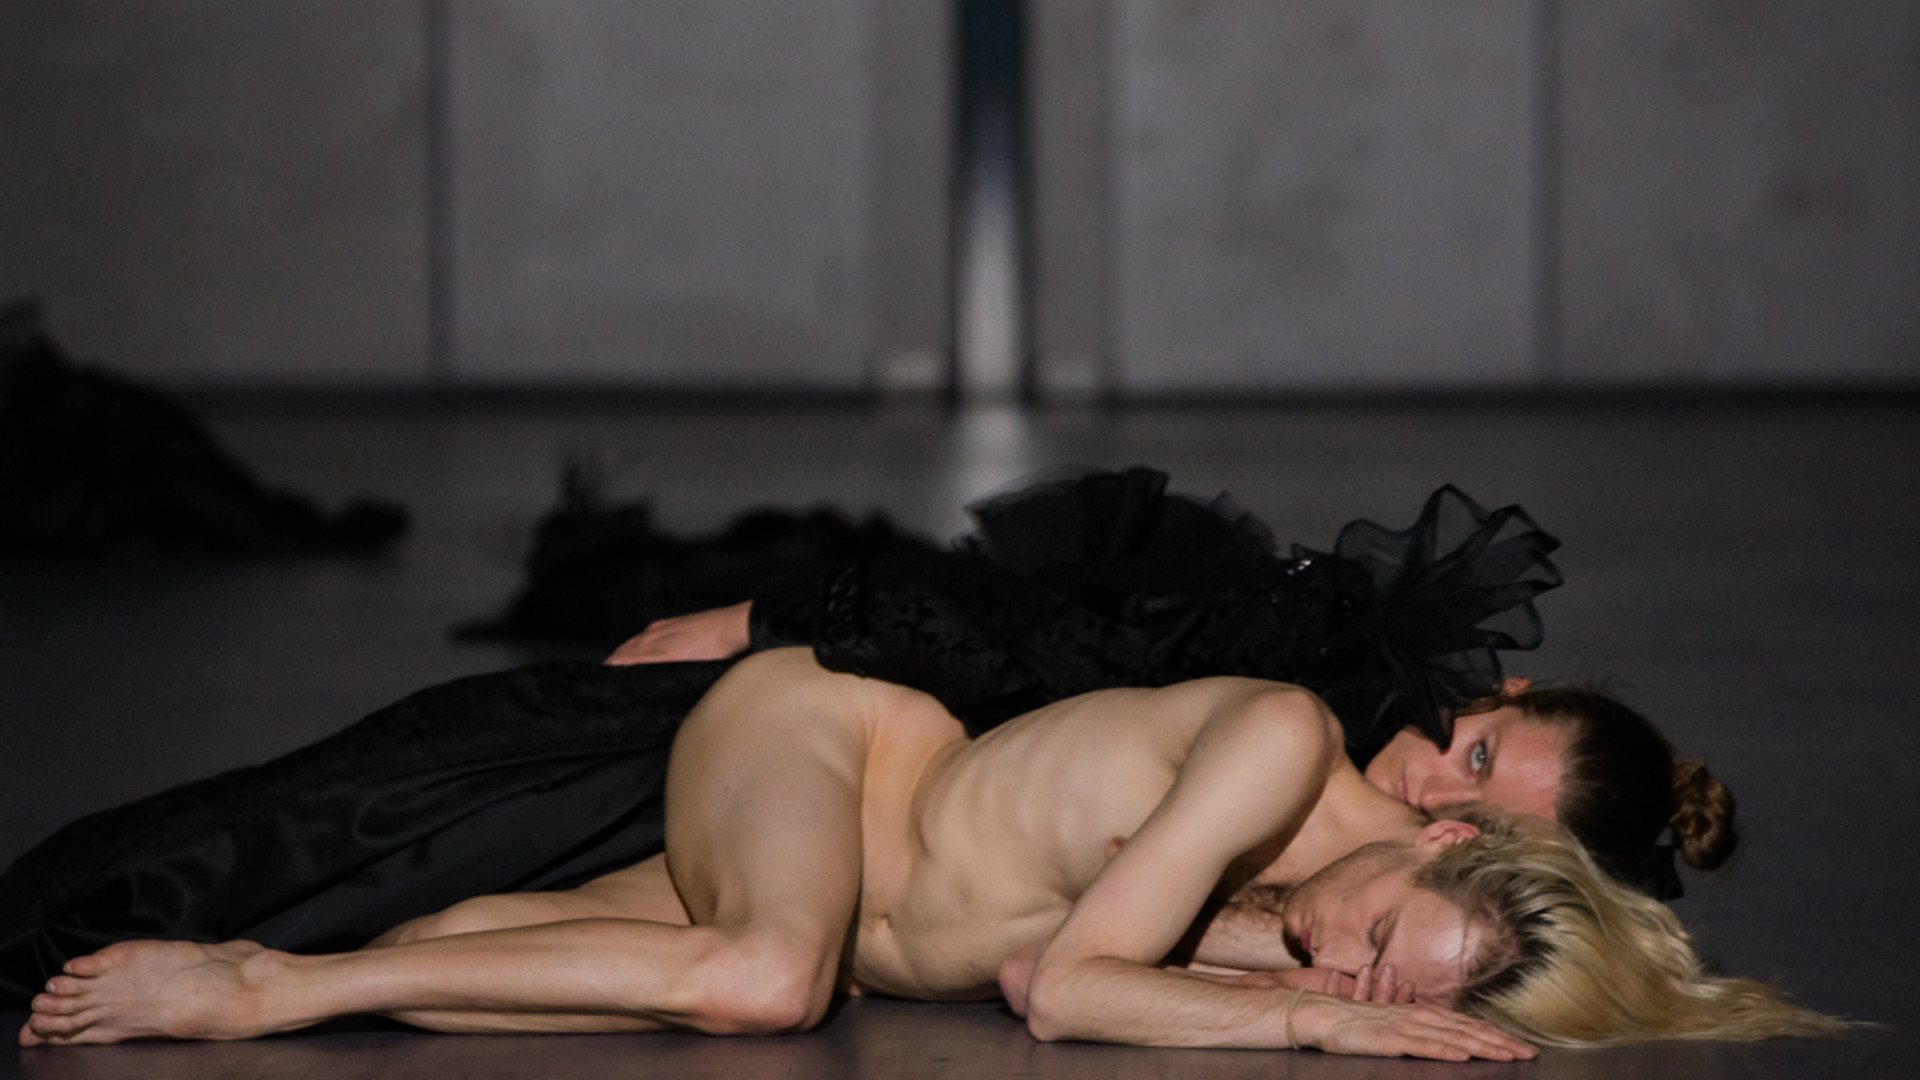 A dancer lies naked with another clothed dancer behind him.